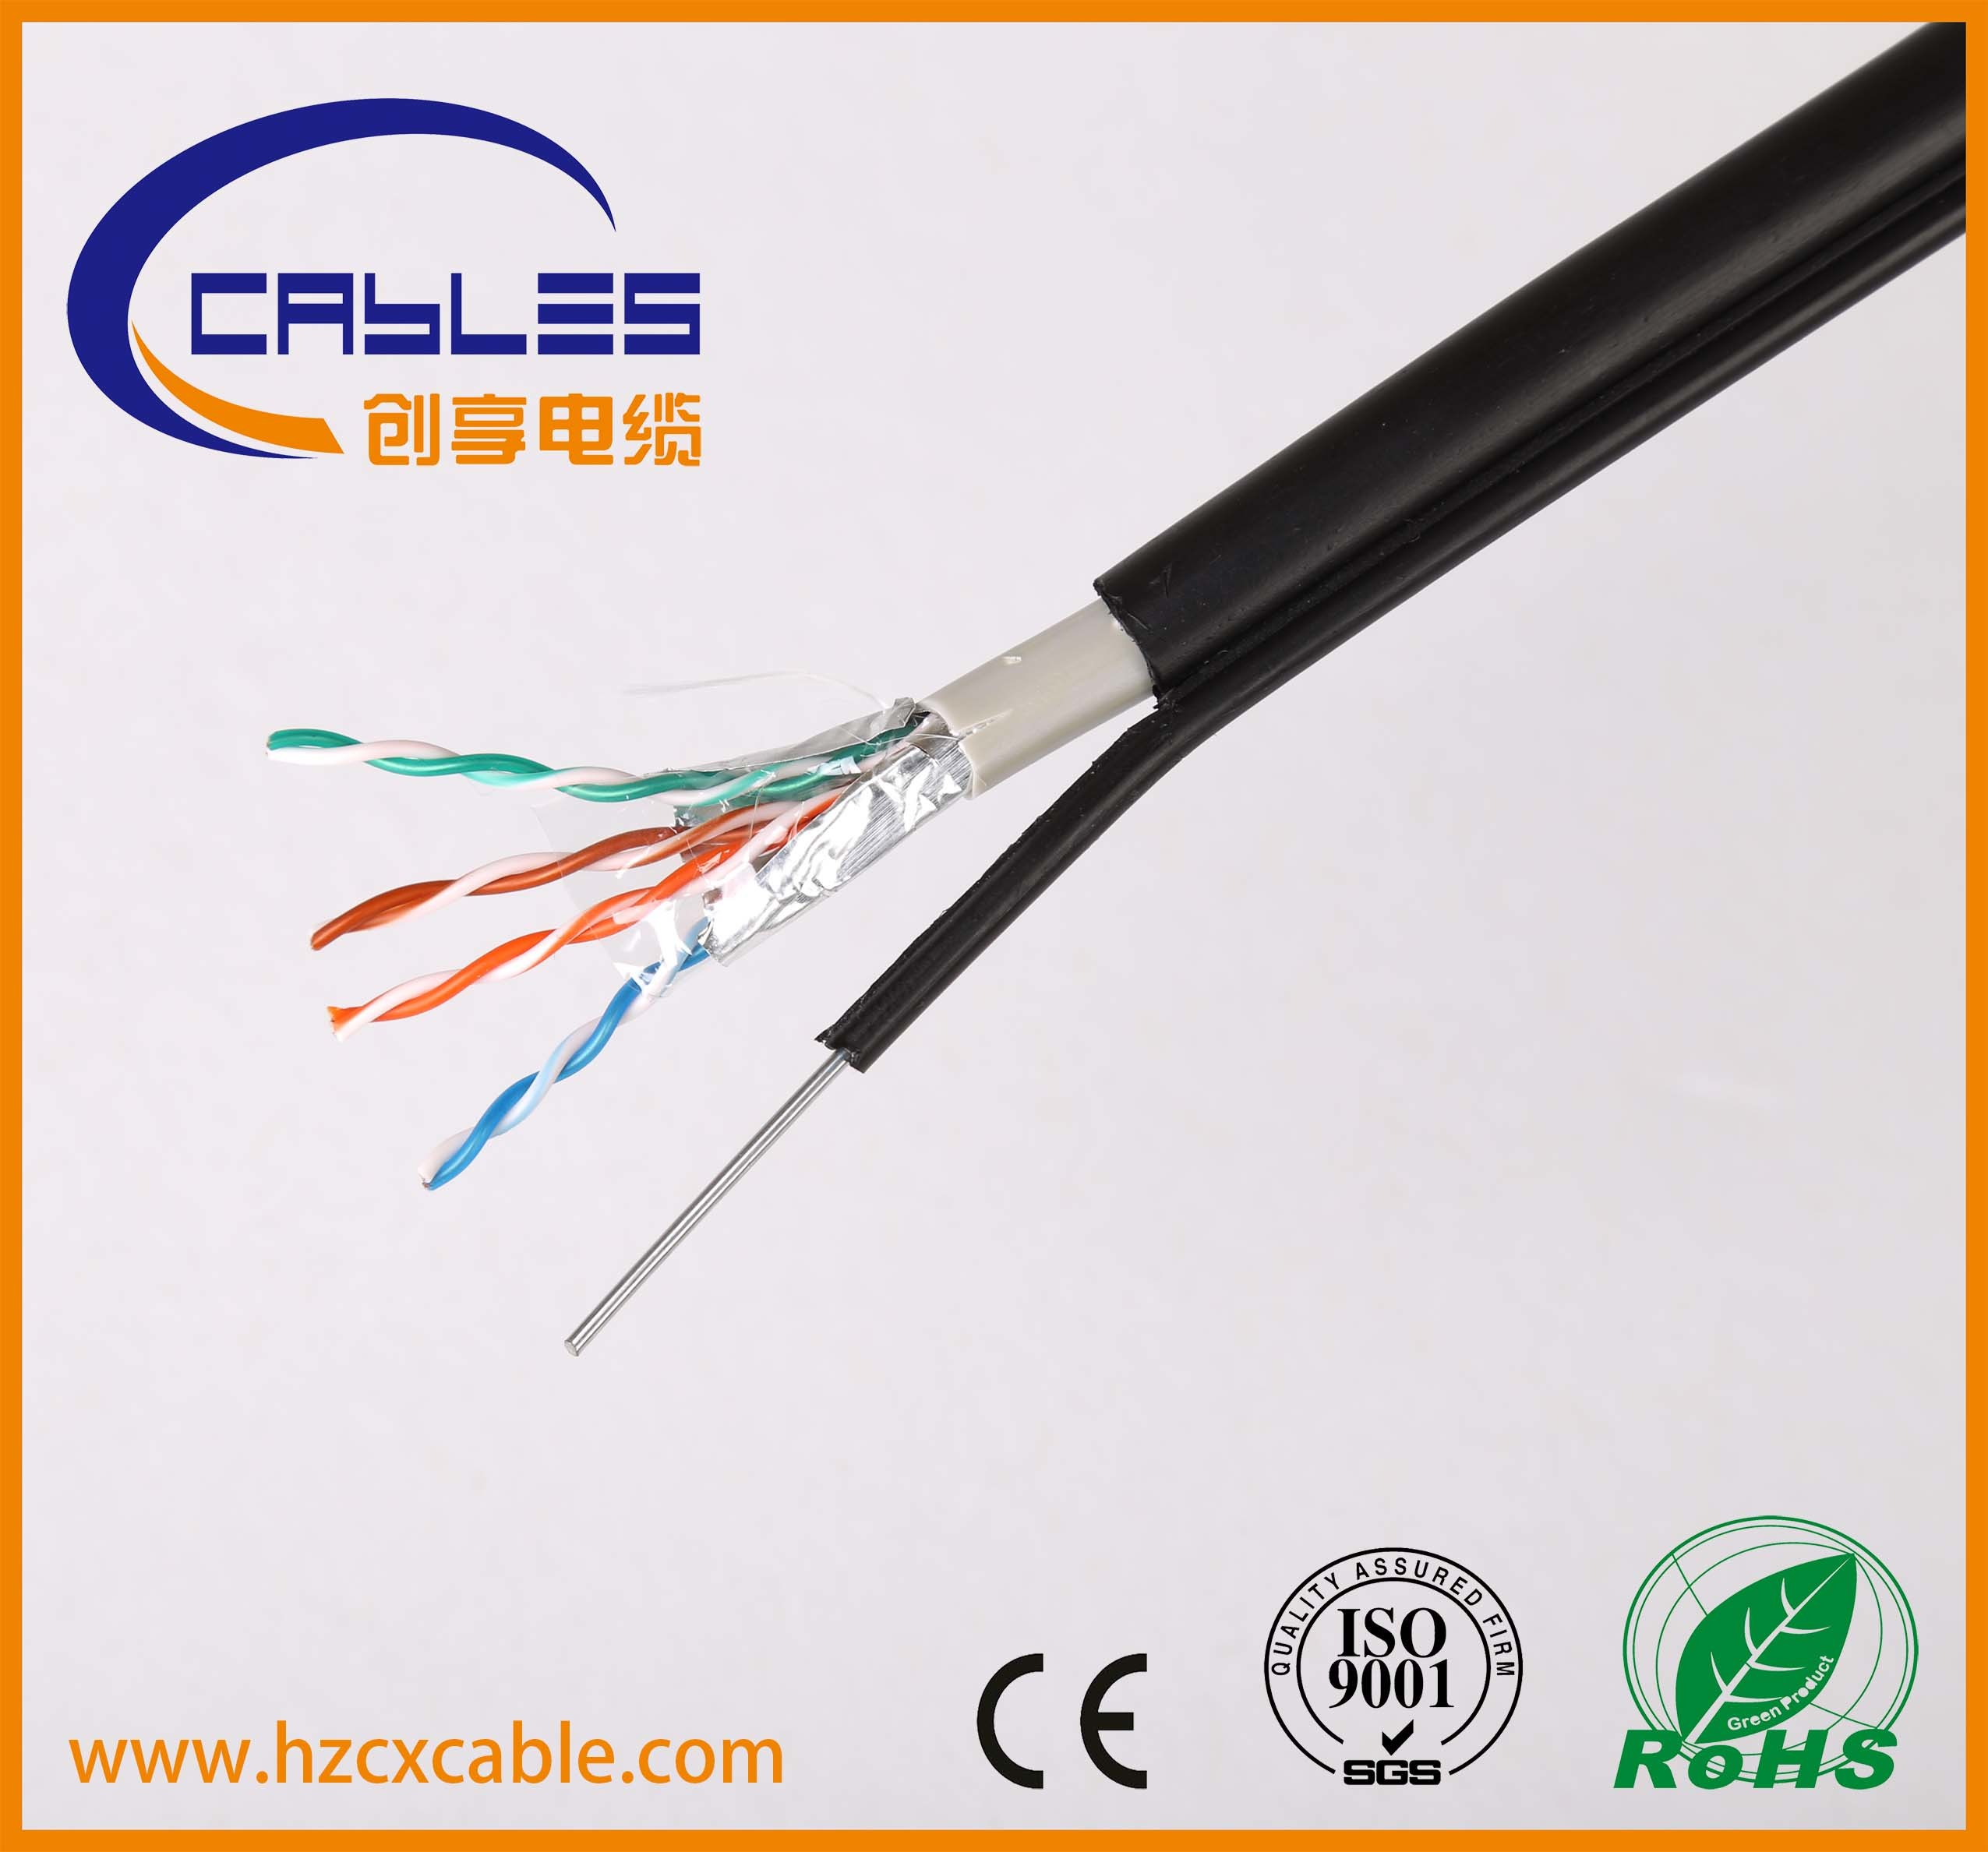 China 23awg Solid Stranded Ethernet Cable Cat5e Photos Pictures How To Make